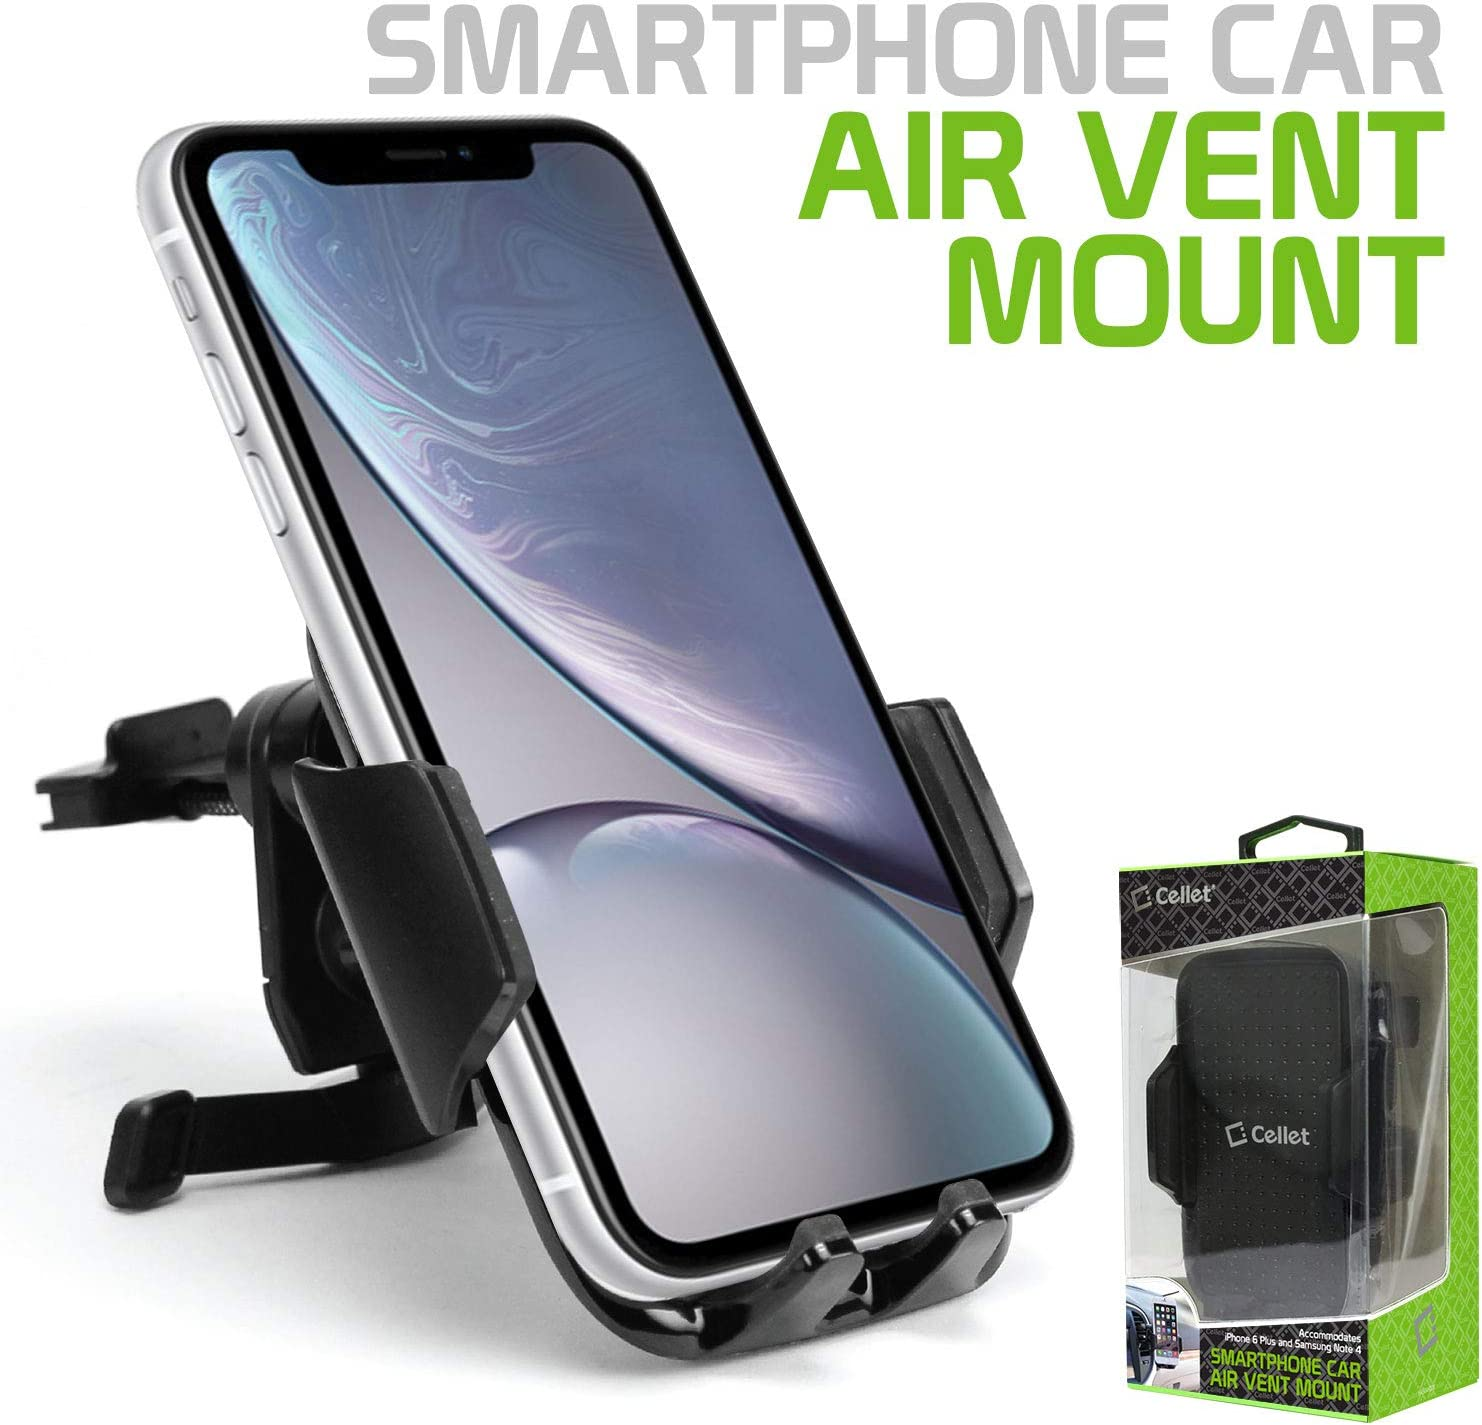 Cellet Air Vent Car Phone Holder Mount Smart Phone Cradle Compatible for Samsung Note 9,8,5 Galaxy A6,S9,S9 Plus,S8,S8+//S8 Active,J7,J7 V,J3,J3 V,J7 Refine,J3 Achieve,J3 Star,J7 Star,J7 Prime,S7,S6